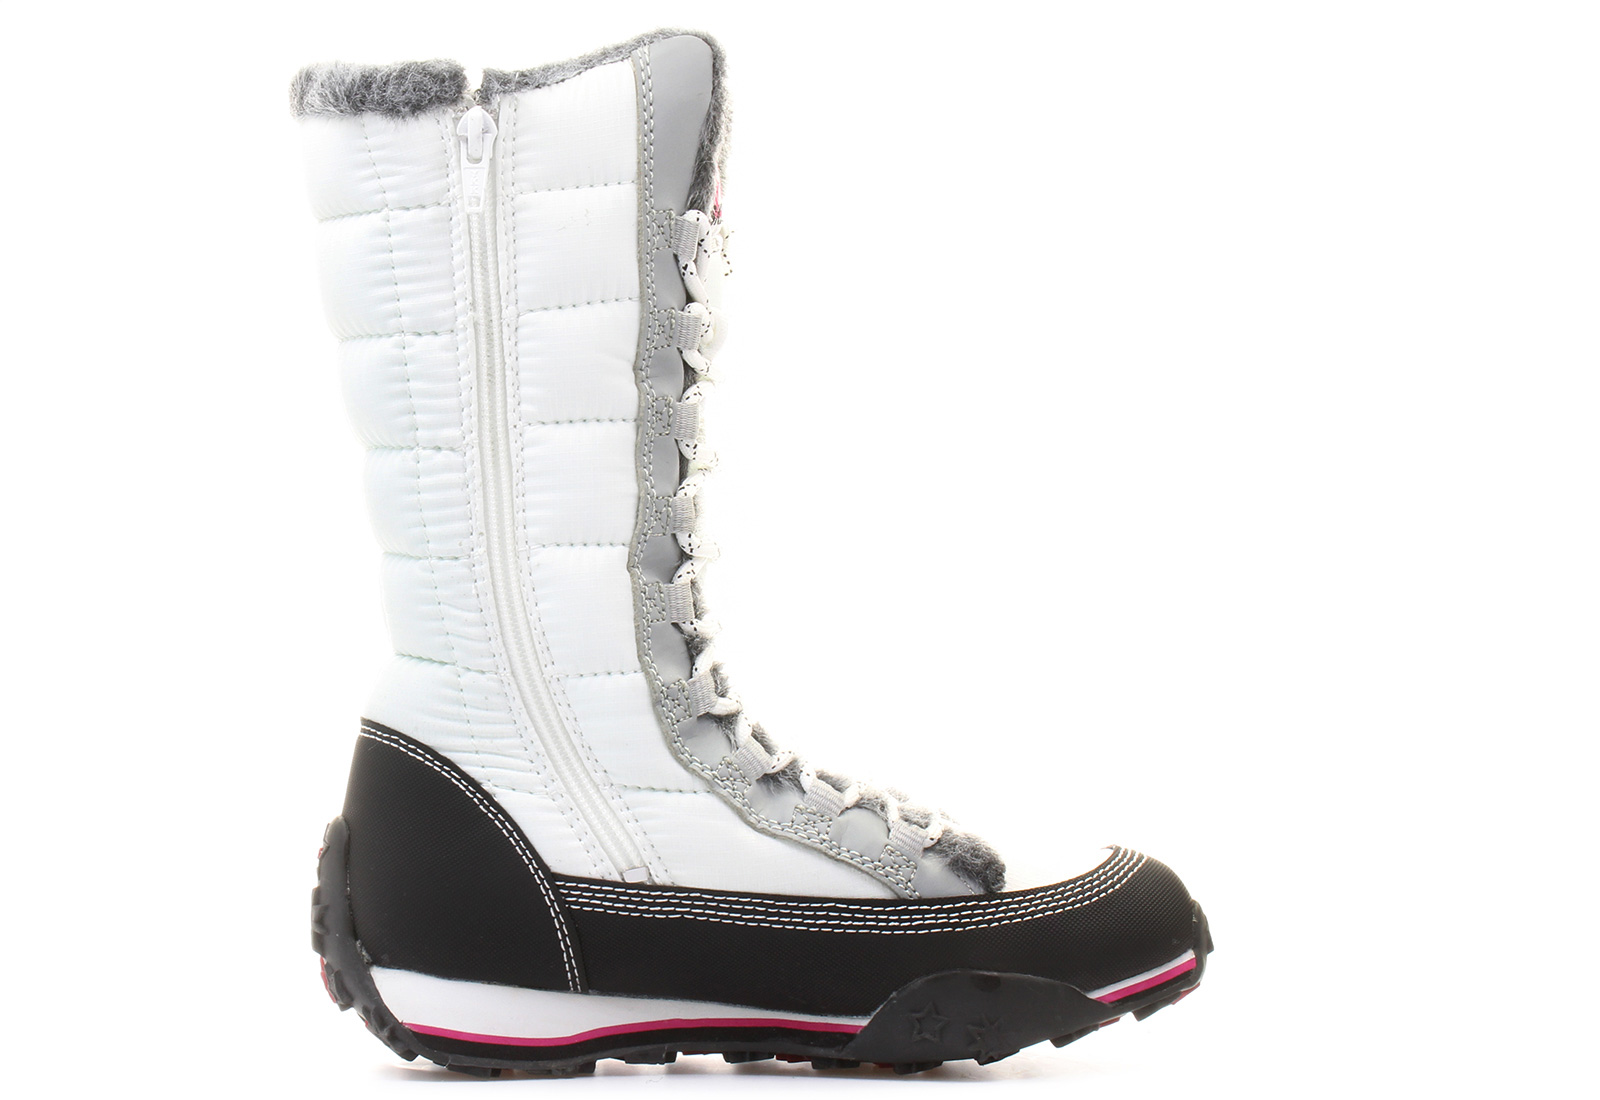 Skechers Boots - Boot High - 46476-wfu - Online shop for sneakers ... c430906277